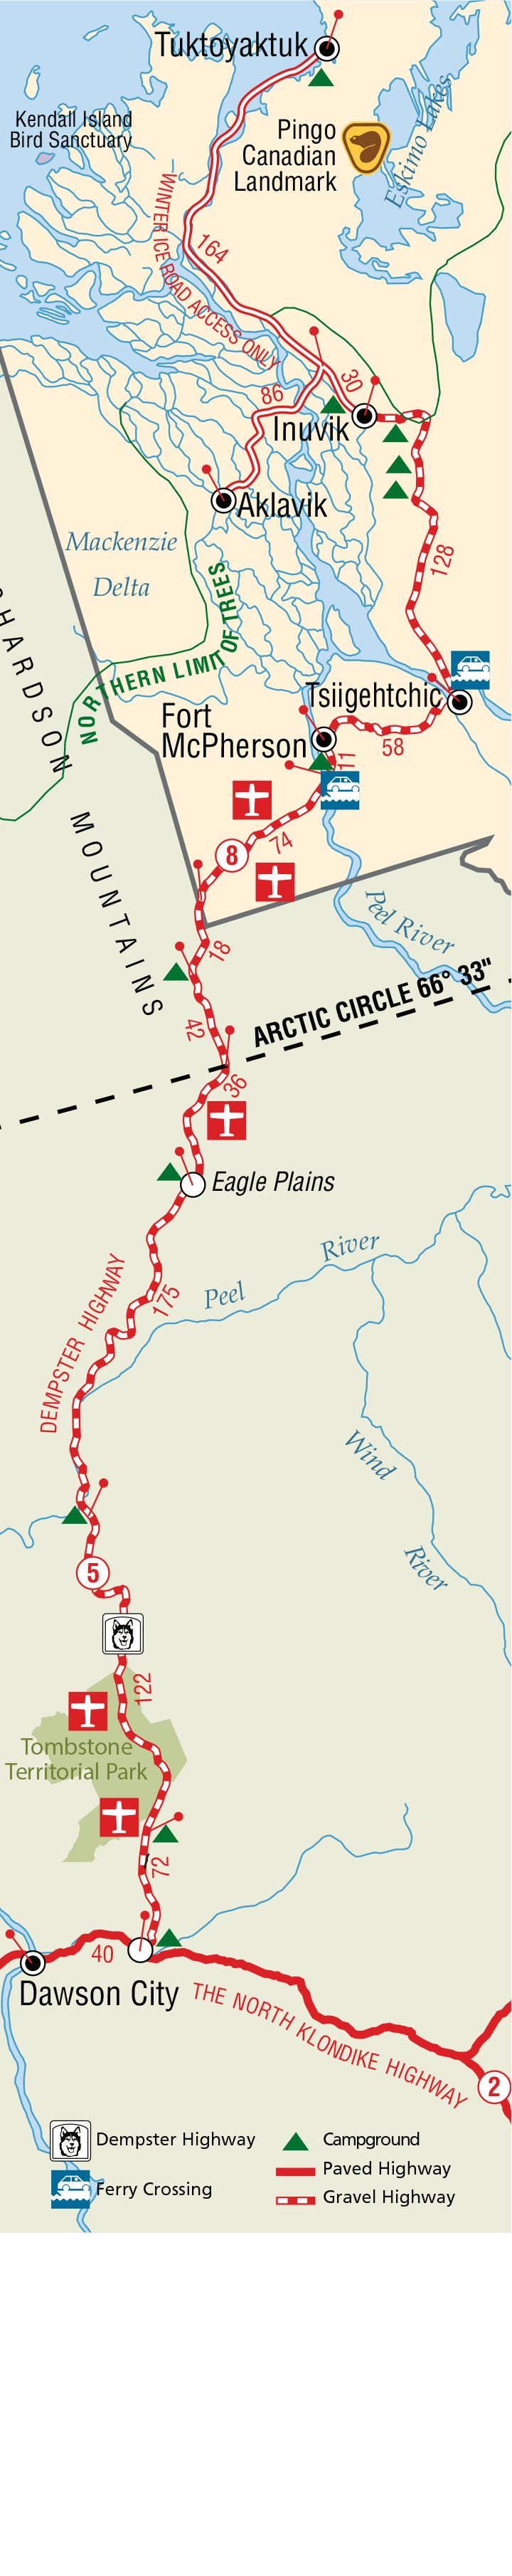 Detailed Dempster Highway Map